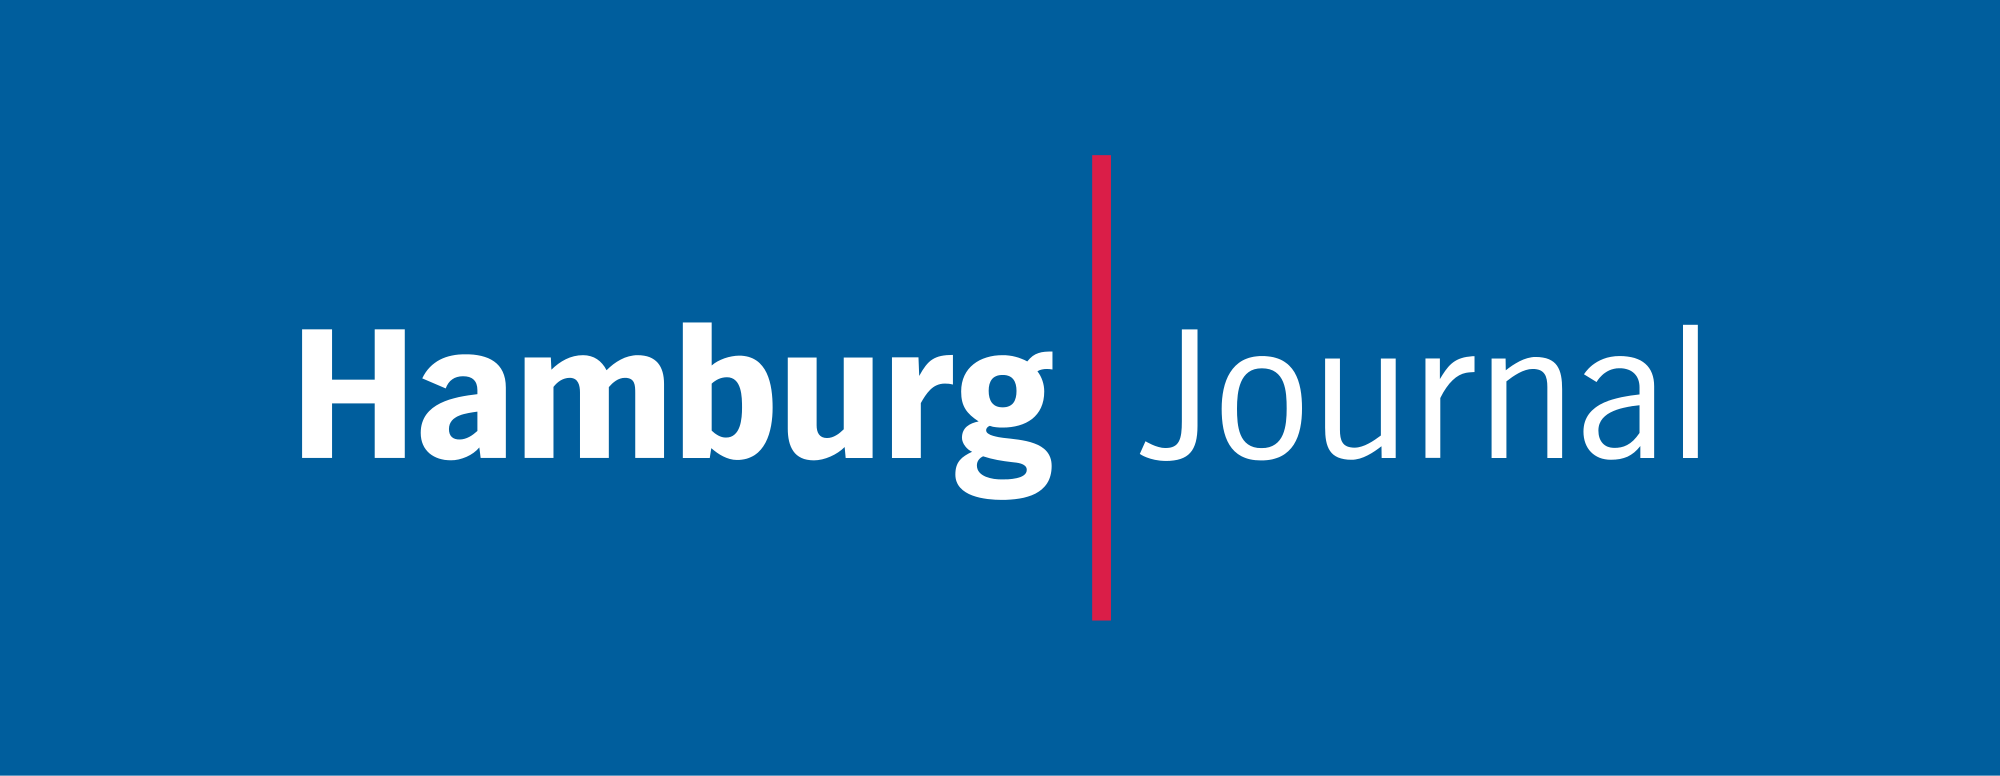 Hamburg-Journal-Logo-svg